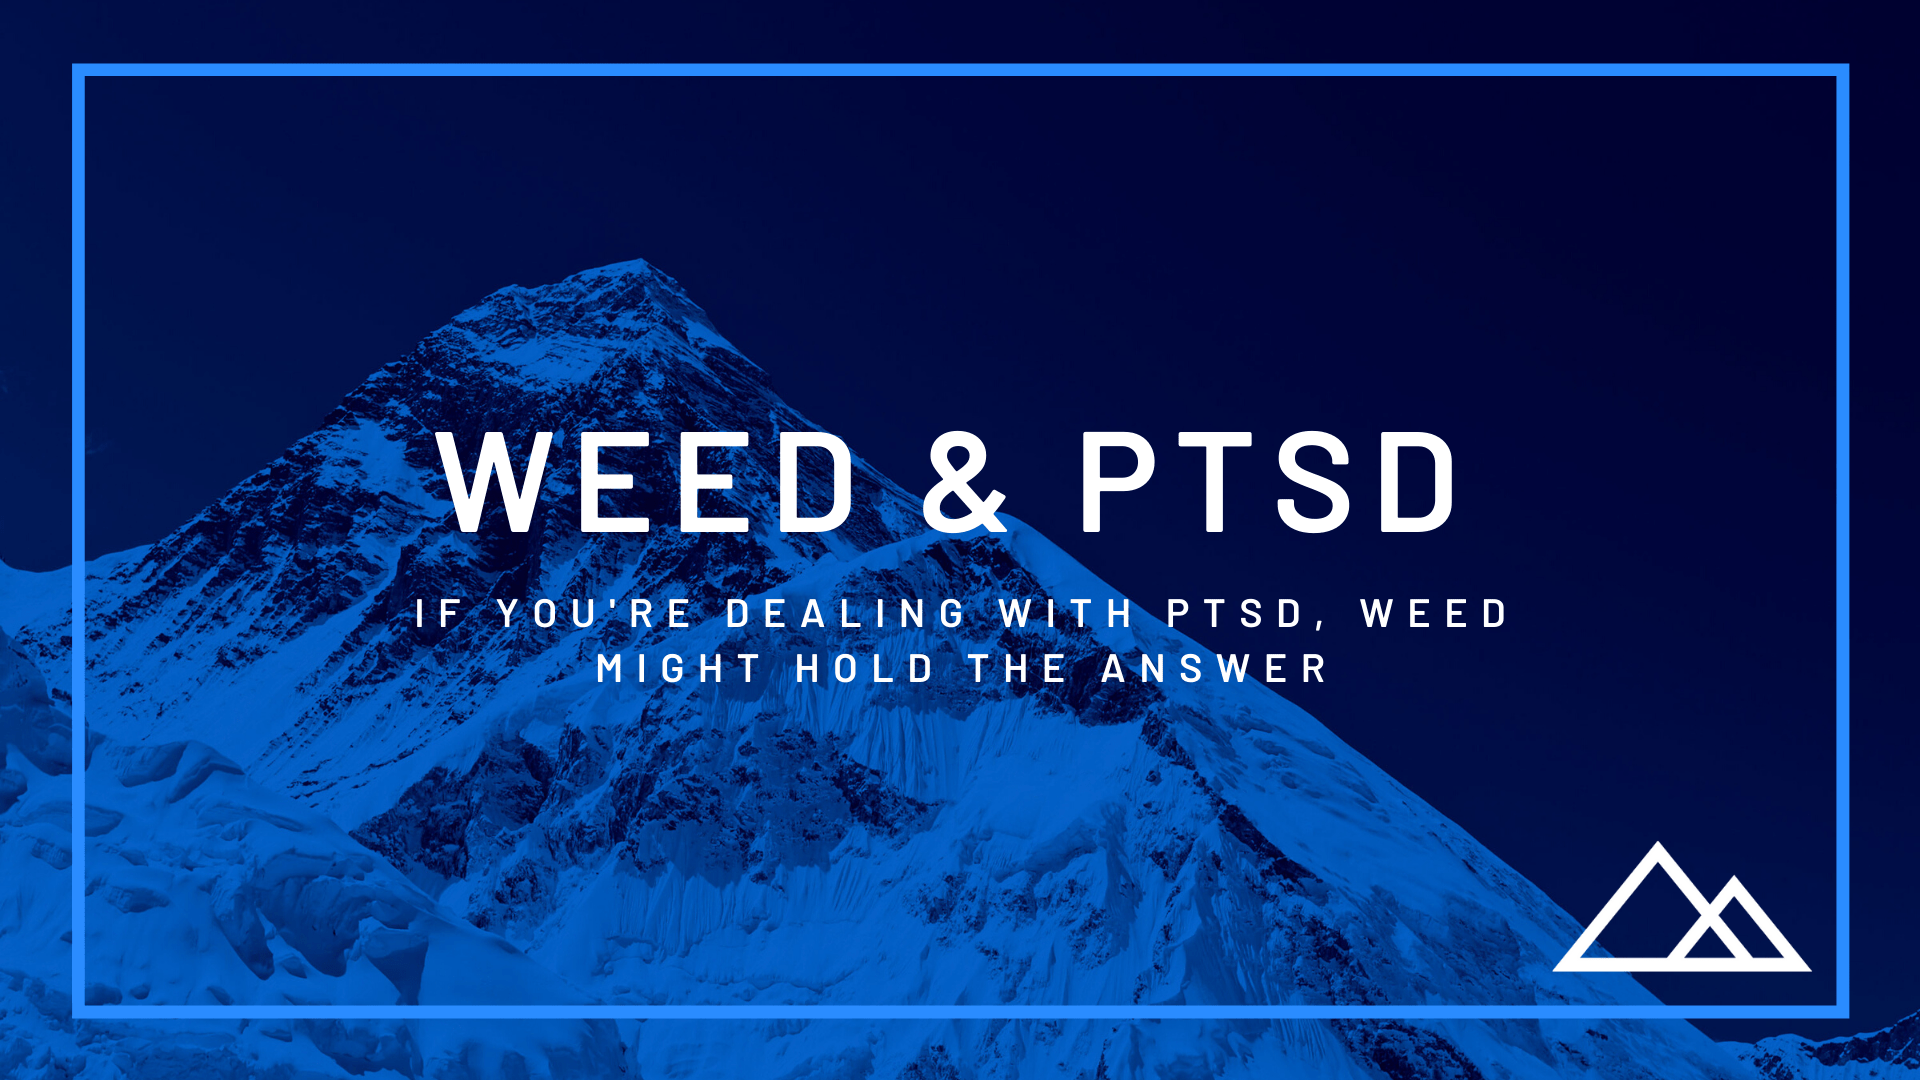 If You're Dealing with PTSD, Cannabis Might Hold the Answer